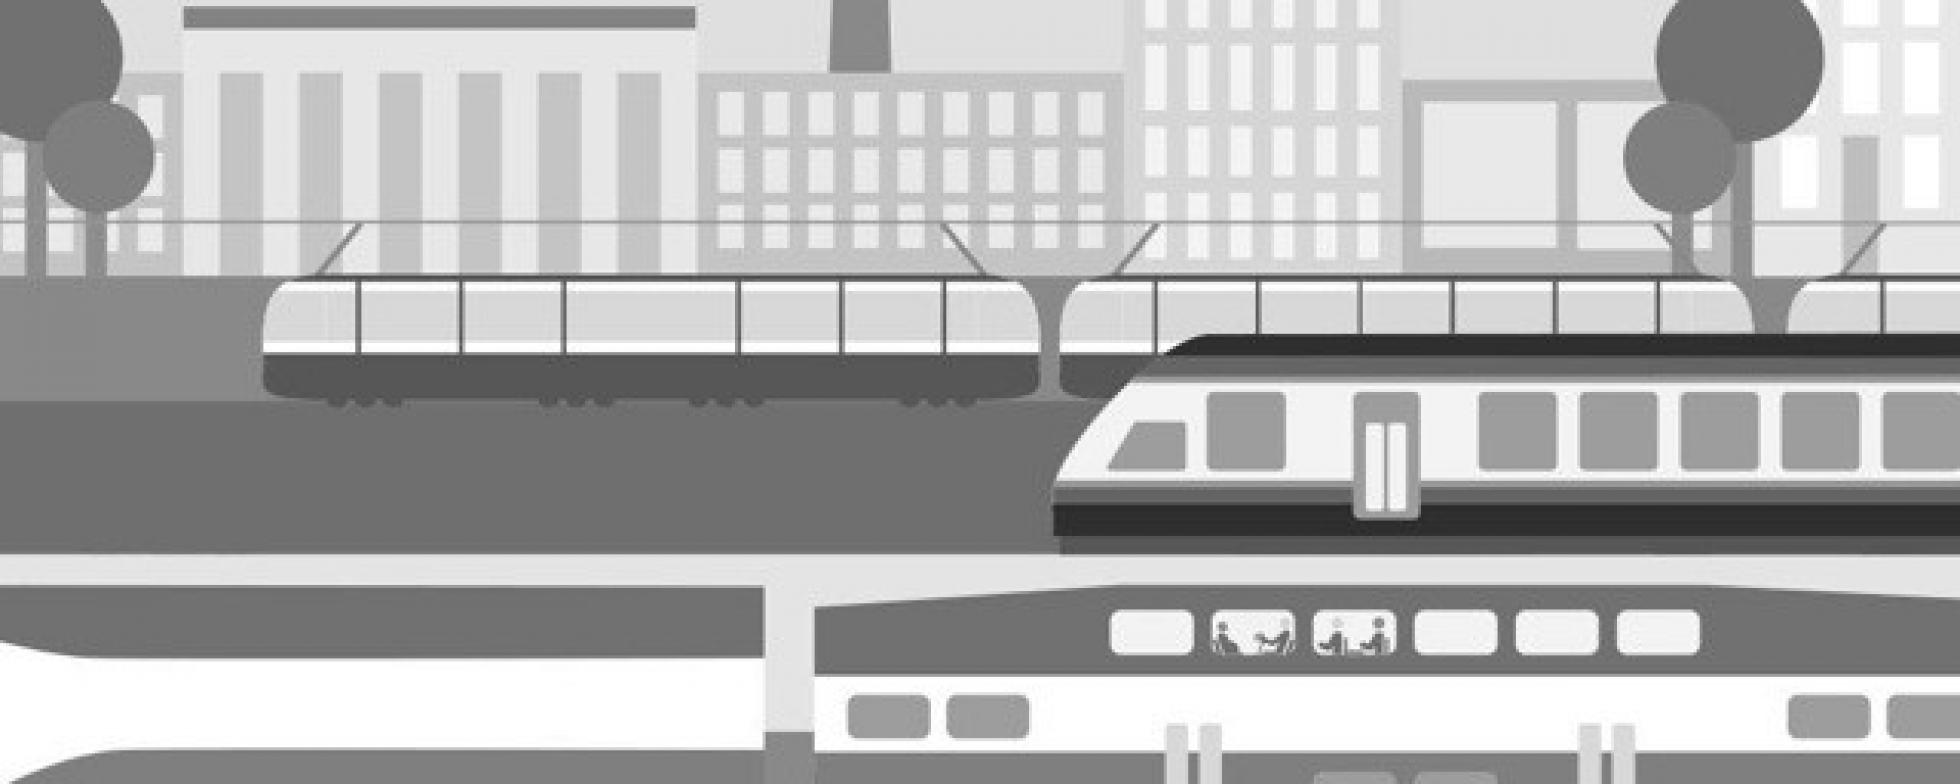 Illustration of MetrolinxGo